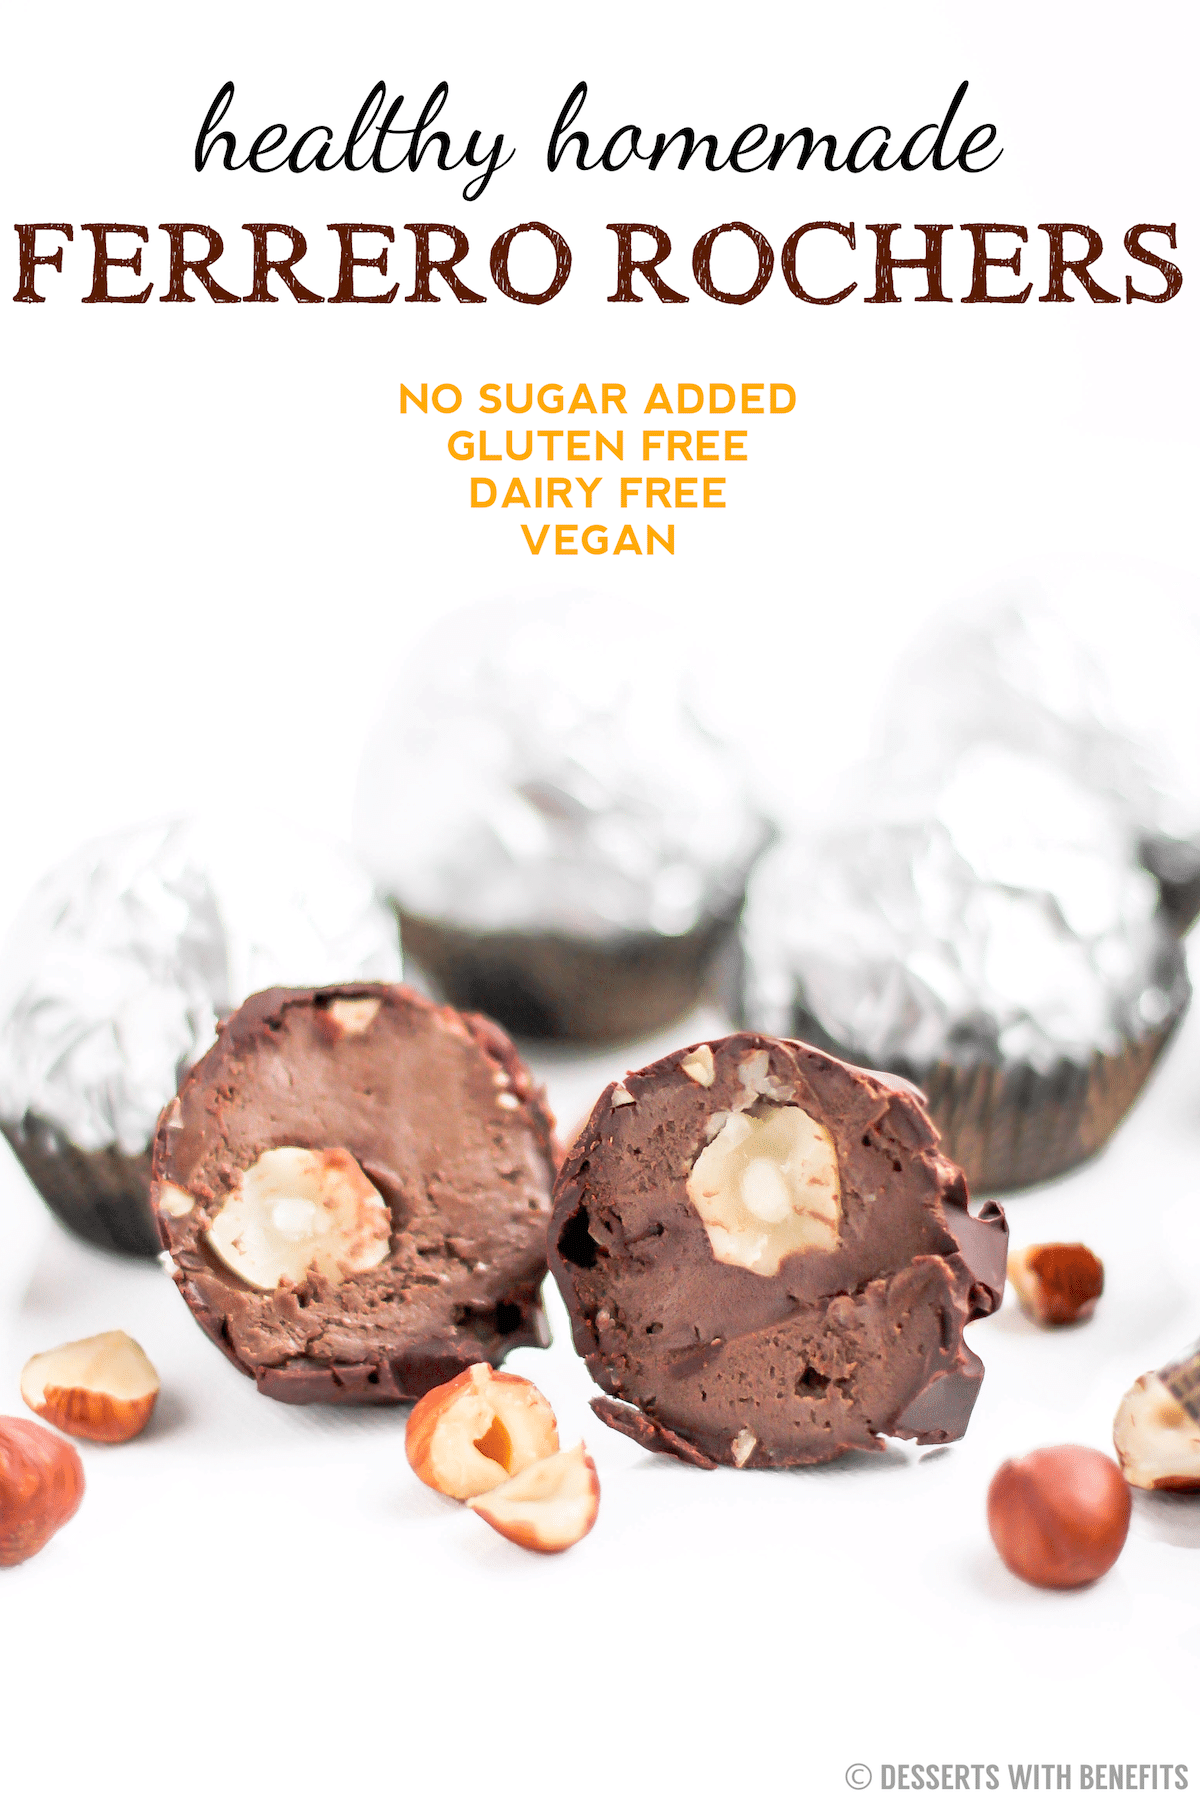 These Healthy Homemade Ferrero Rochers are super delicious and easy to make, you'd never know they're low sugar, high protein, gluten free, dairy free, vegan! -- Desserts With Benefits Blog